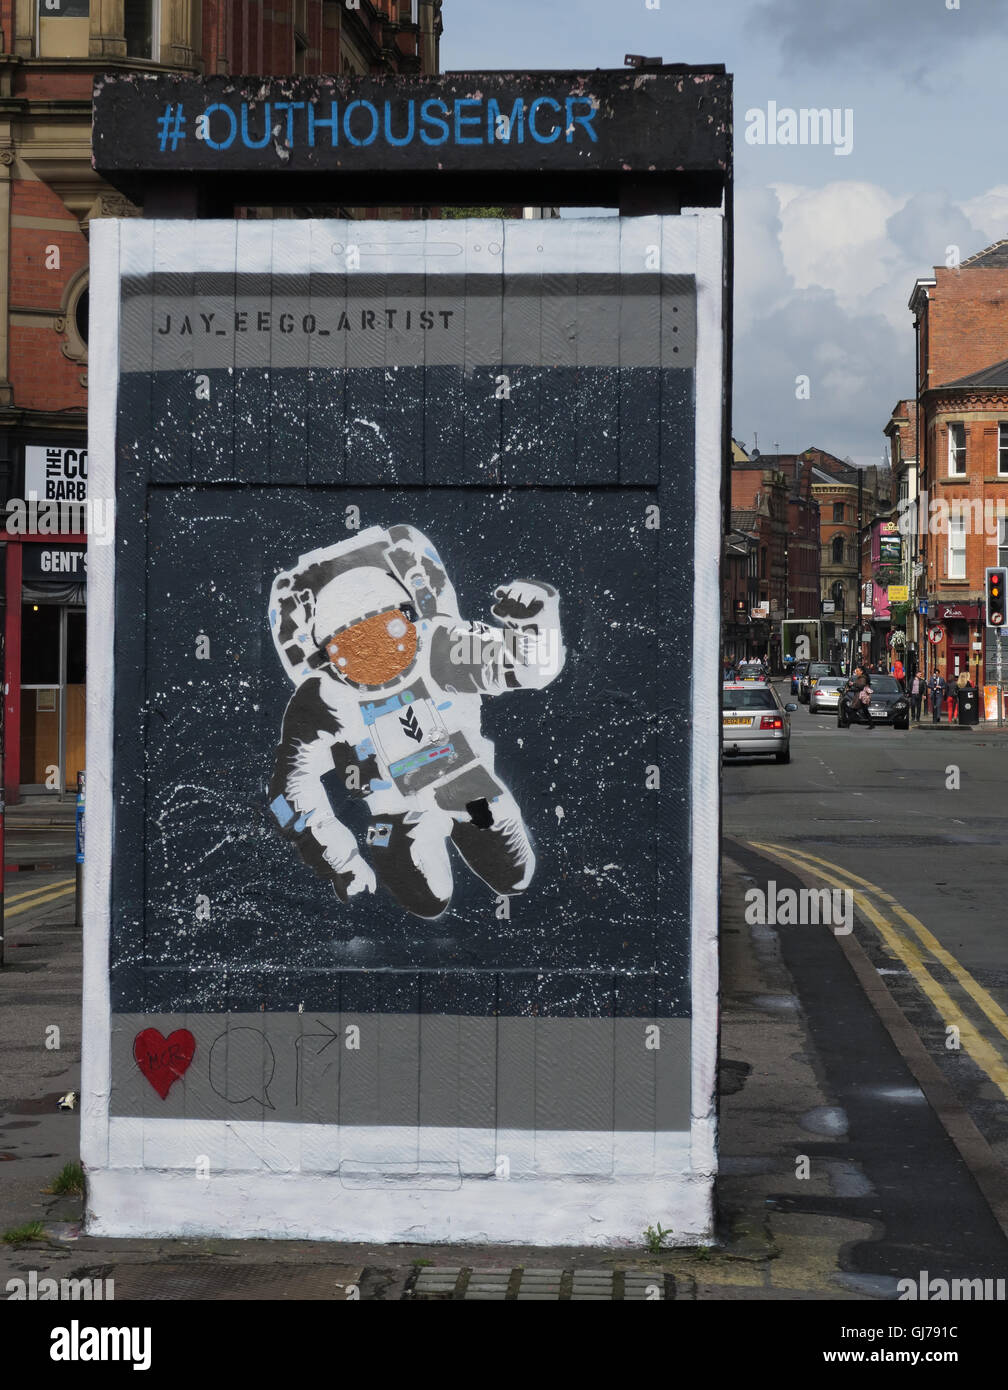 art,bowie,face,faces,David,paint,arts,media,paint,painting,Manchester,city,centre,Wall,Graffiti,August2016,August,2016,OUTHOUSEMCR,culture,historic,history,industry,industrial,tourist,tourism,travel,David Bowie,Wall Graffiti,Northern Quarter,Stevenson,Square,GoTonySmith,@HotpixUK,HotpixUK,United,Kingdom,GB,English,British,JayEegoArtist,Jay_Eego_Artist,city,centre,Buy Pictures of,Buy Images Of,Images of,Stock Images,United Kingdom,Great Britain